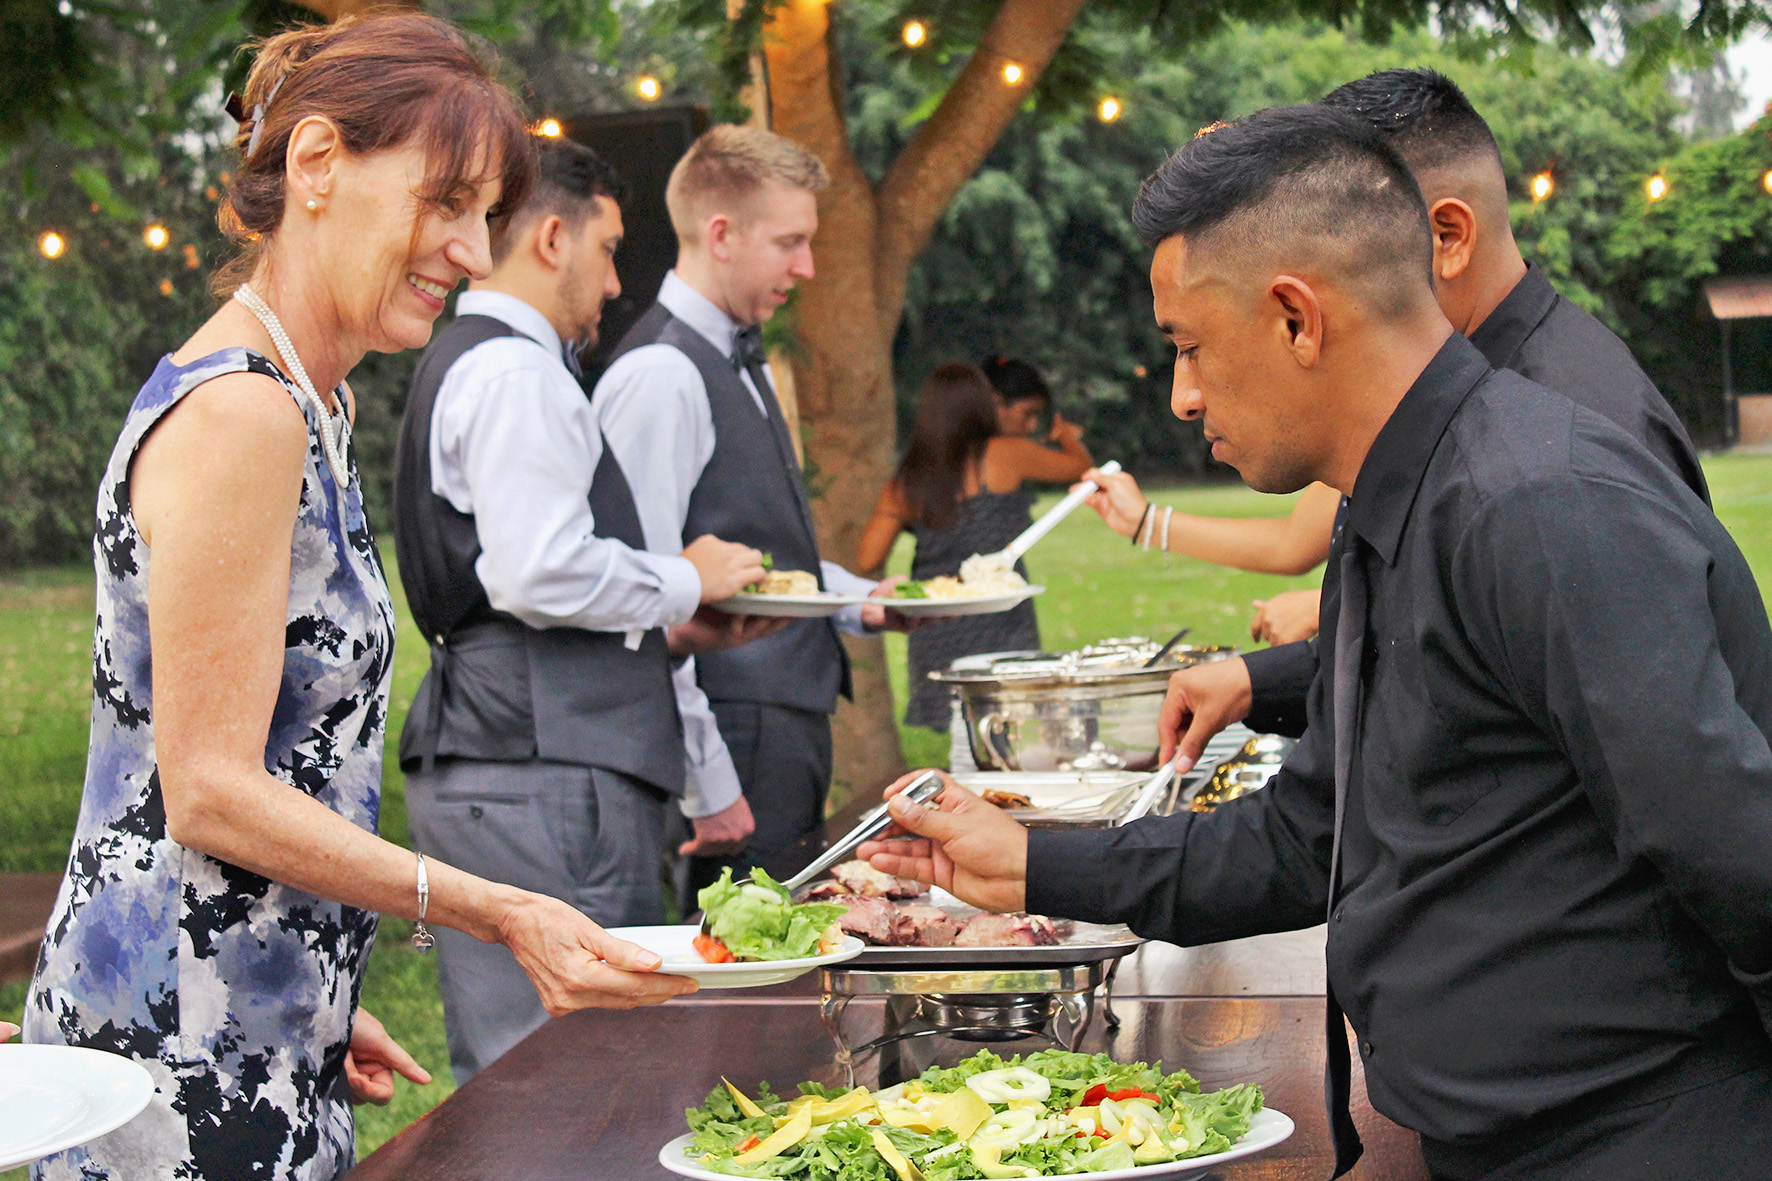 catering staf